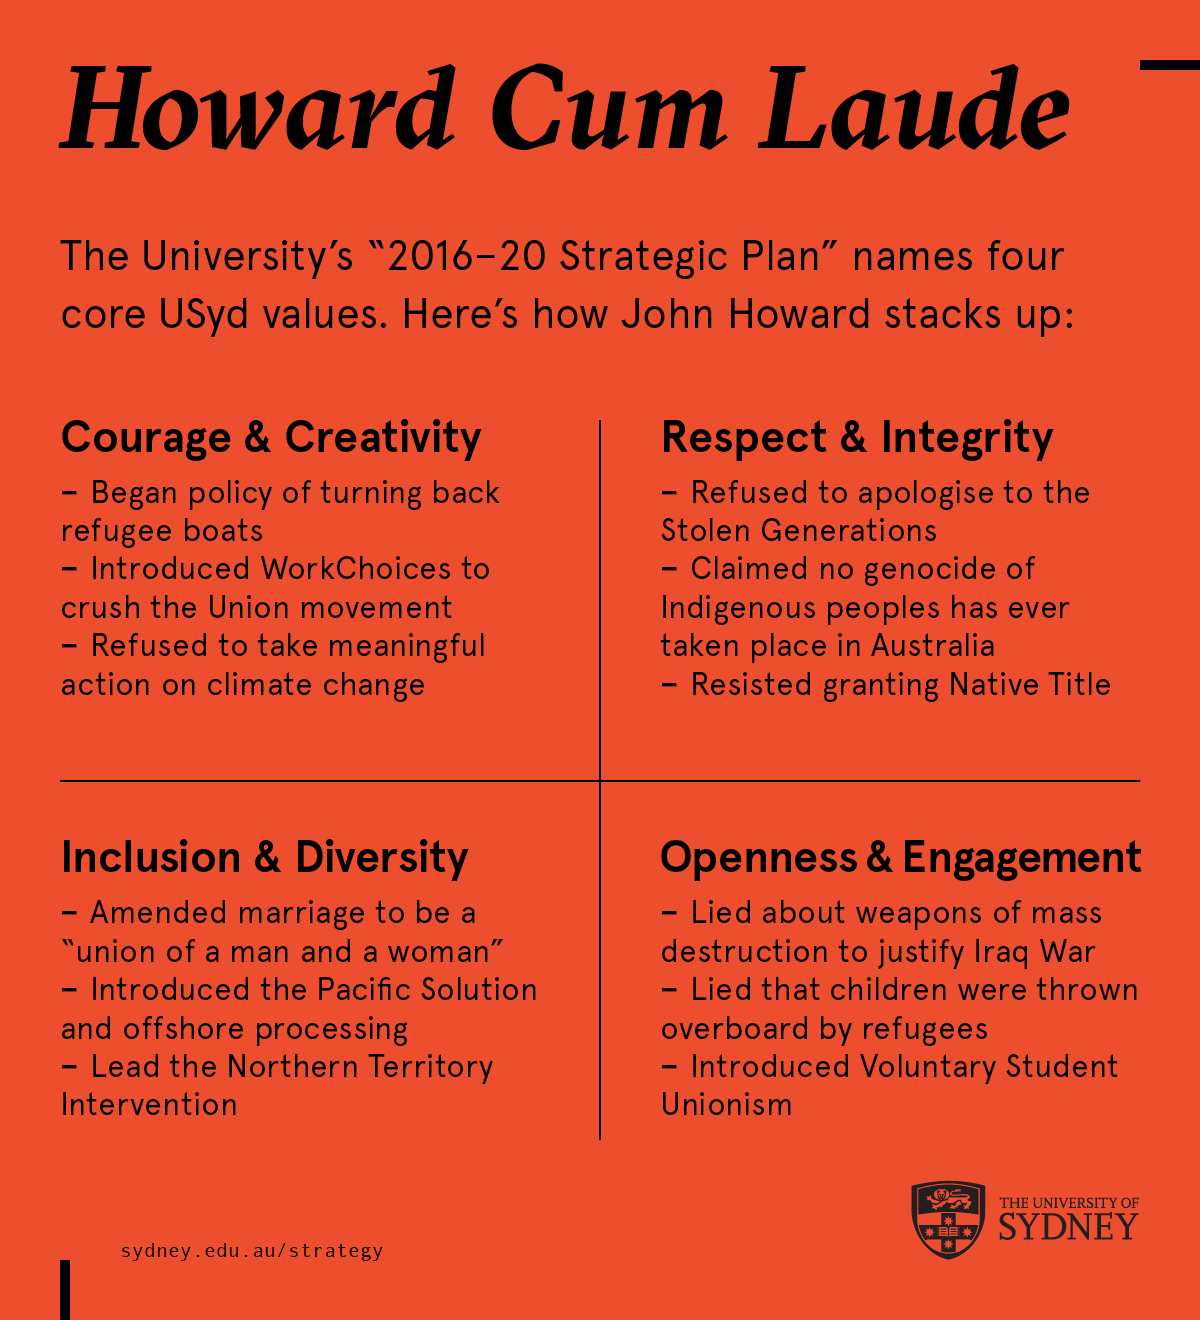 How John Howard matches up with the University's values